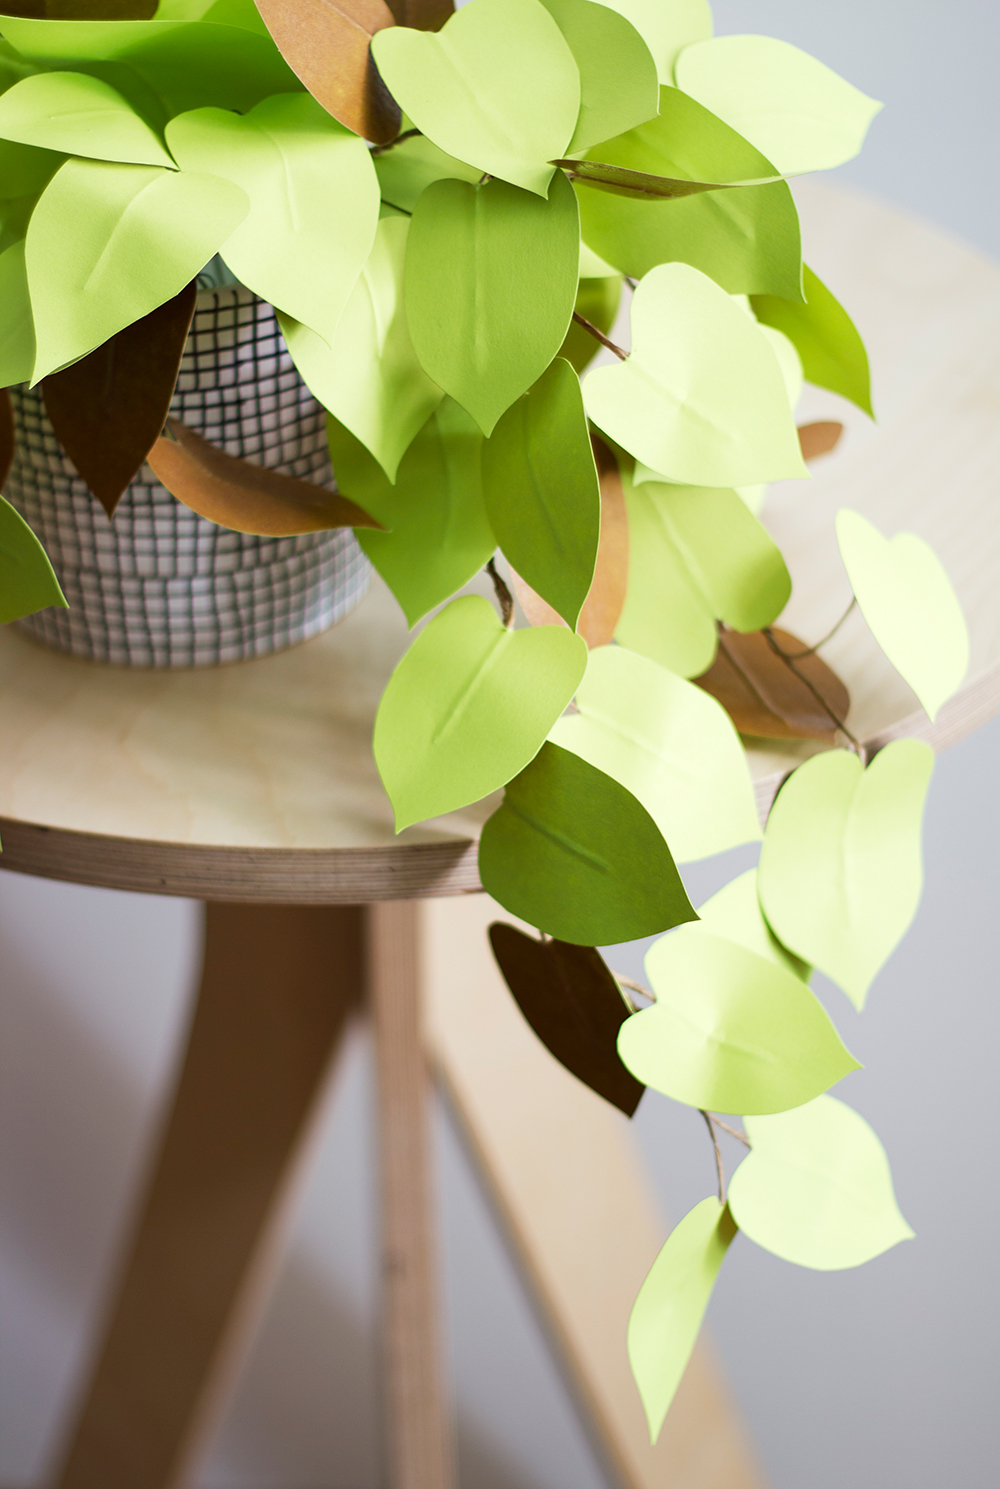 Corrie_Hogg_paper_heartleaf_philodendron_plant_DIY_5-the-house-that-lars-built